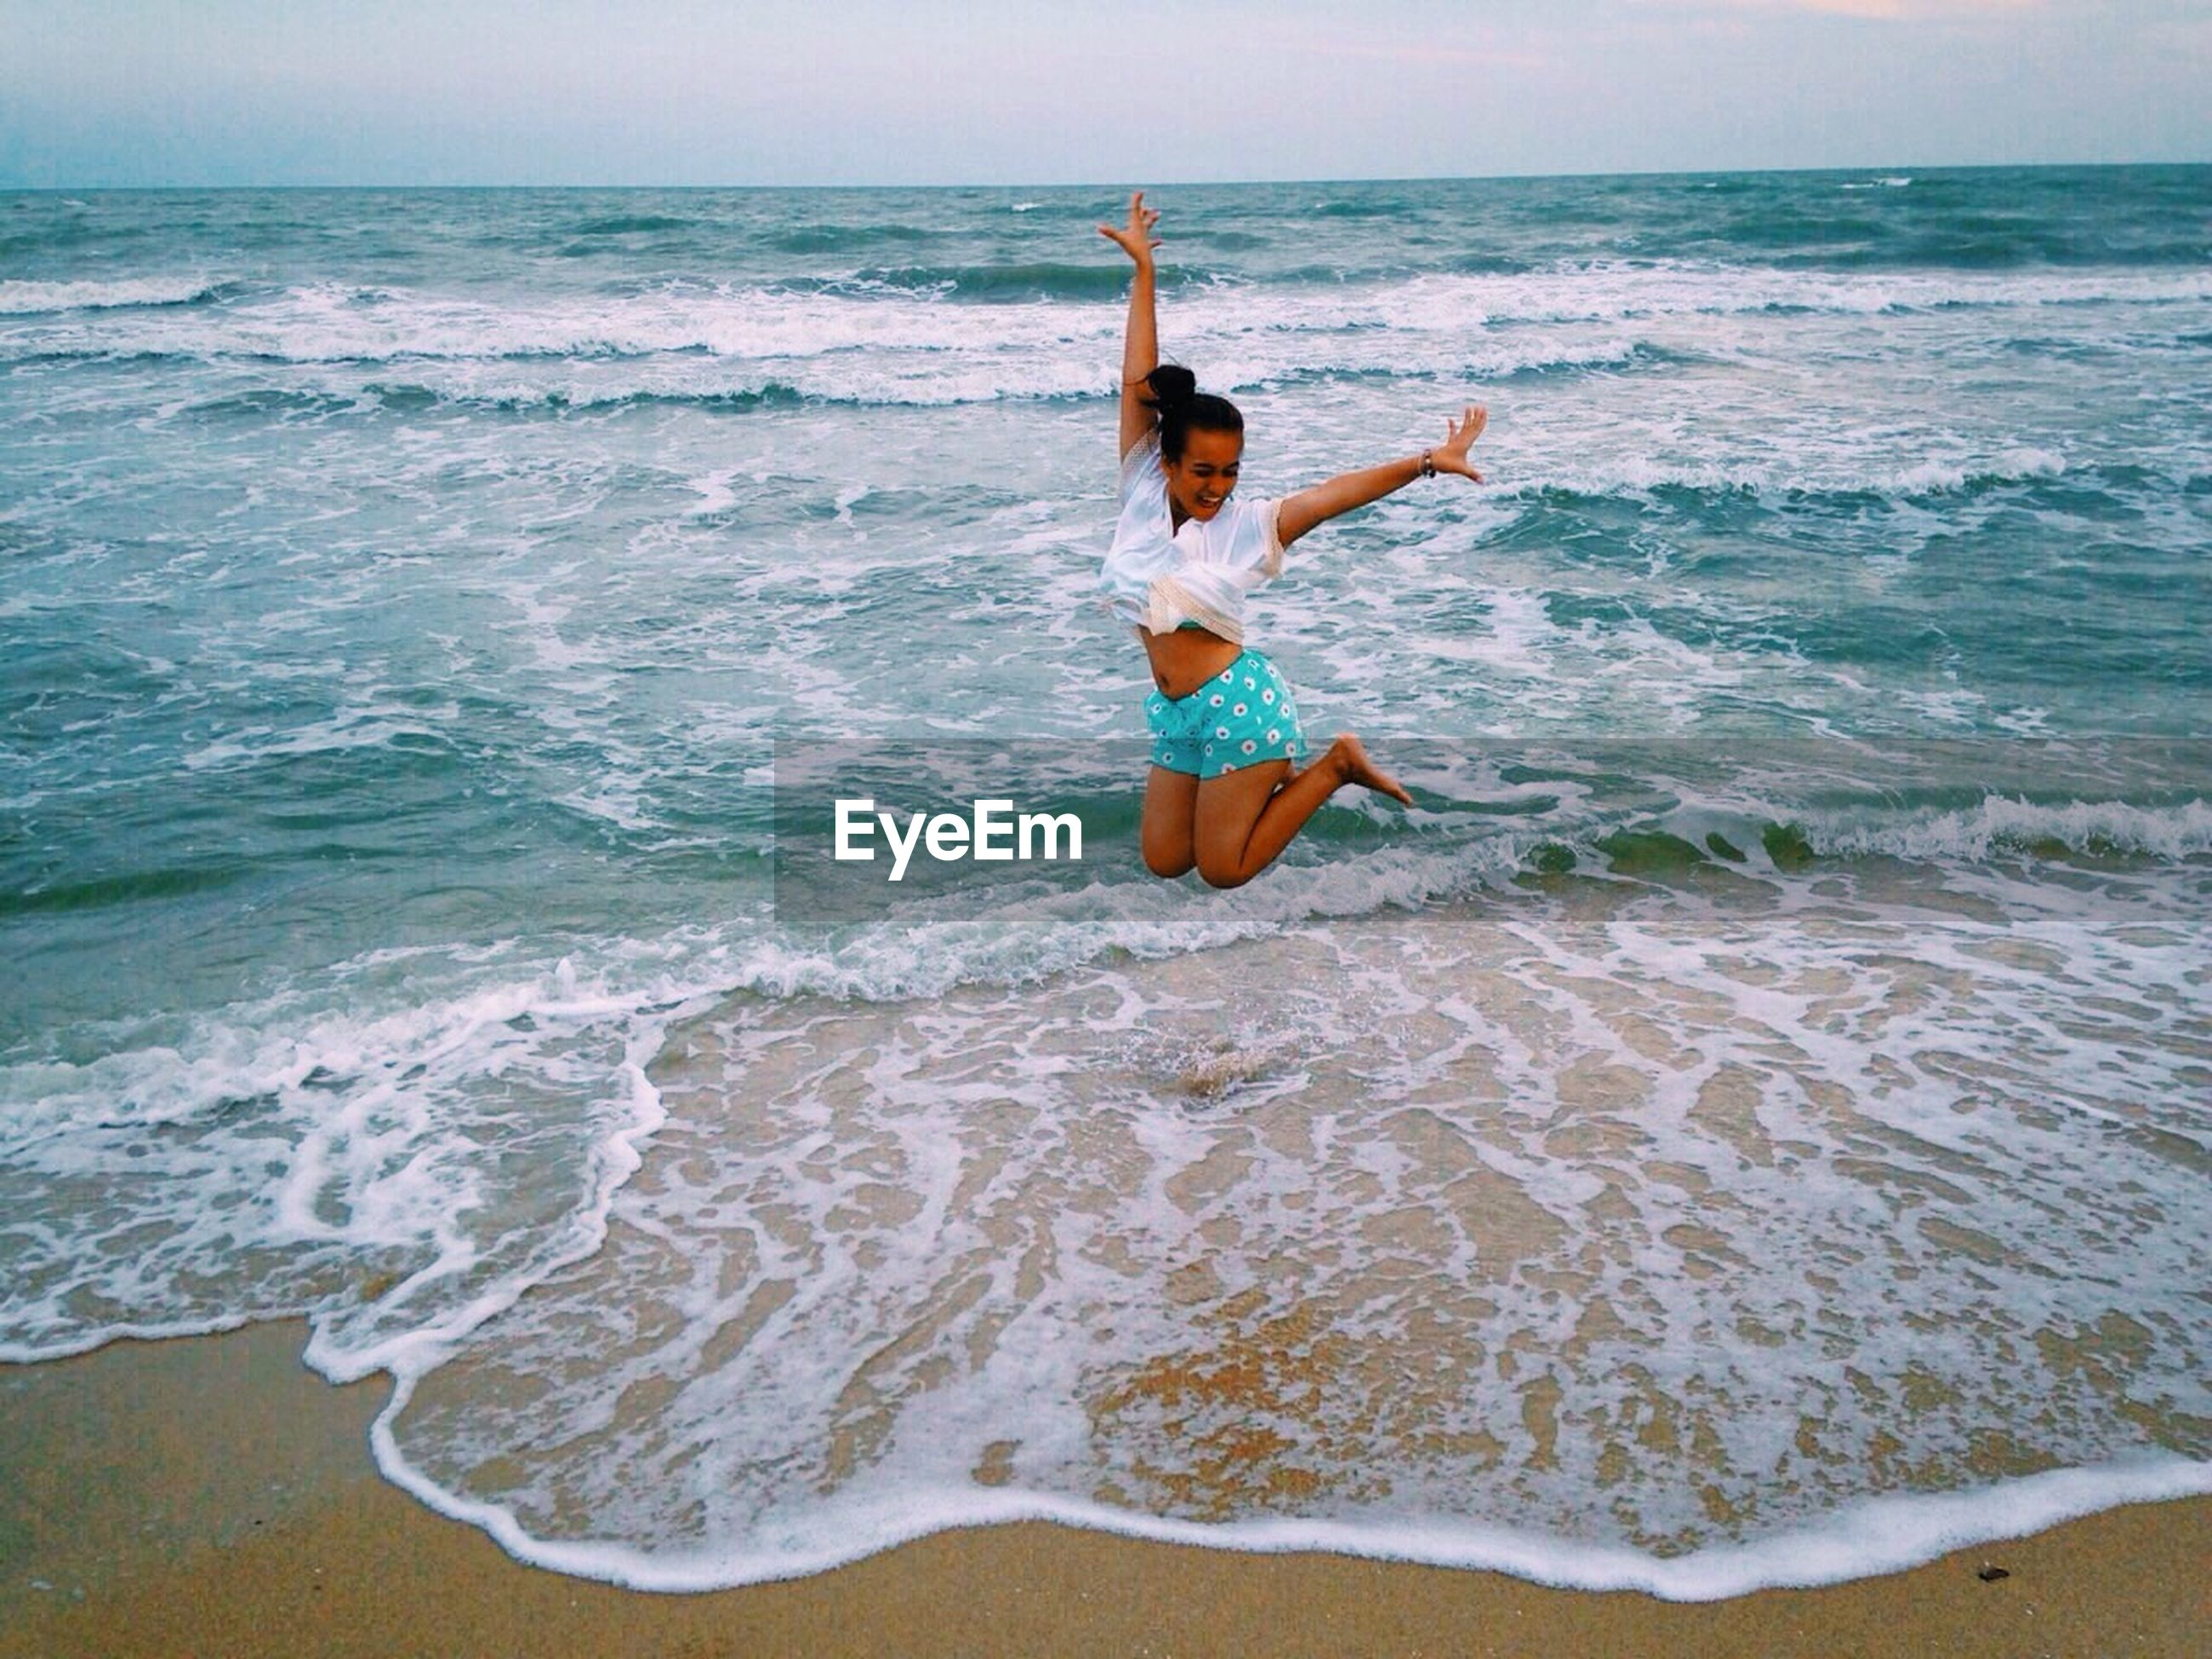 sea, water, horizon over water, beach, wave, full length, motion, leisure activity, shore, surf, mid-air, vacations, lifestyles, jumping, beauty in nature, sand, nature, flying